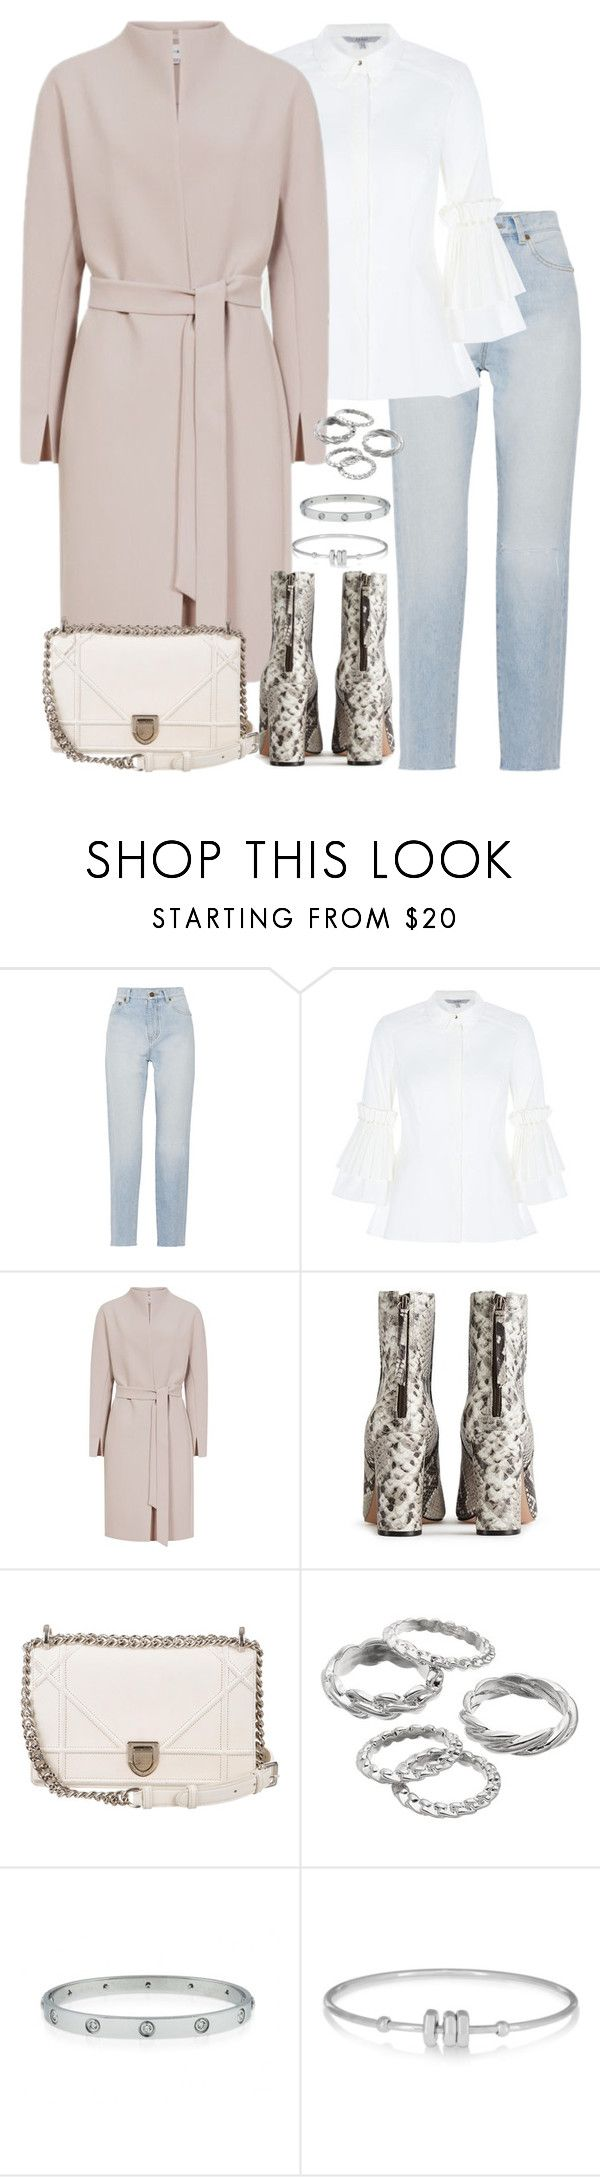 """""""Untitled #5344"""" by theeuropeancloset ❤ liked on Polyvore featuring Yves Saint Laurent, Nico, Christian Dior, Apt. 9 and Marc by Marc Jacobs"""